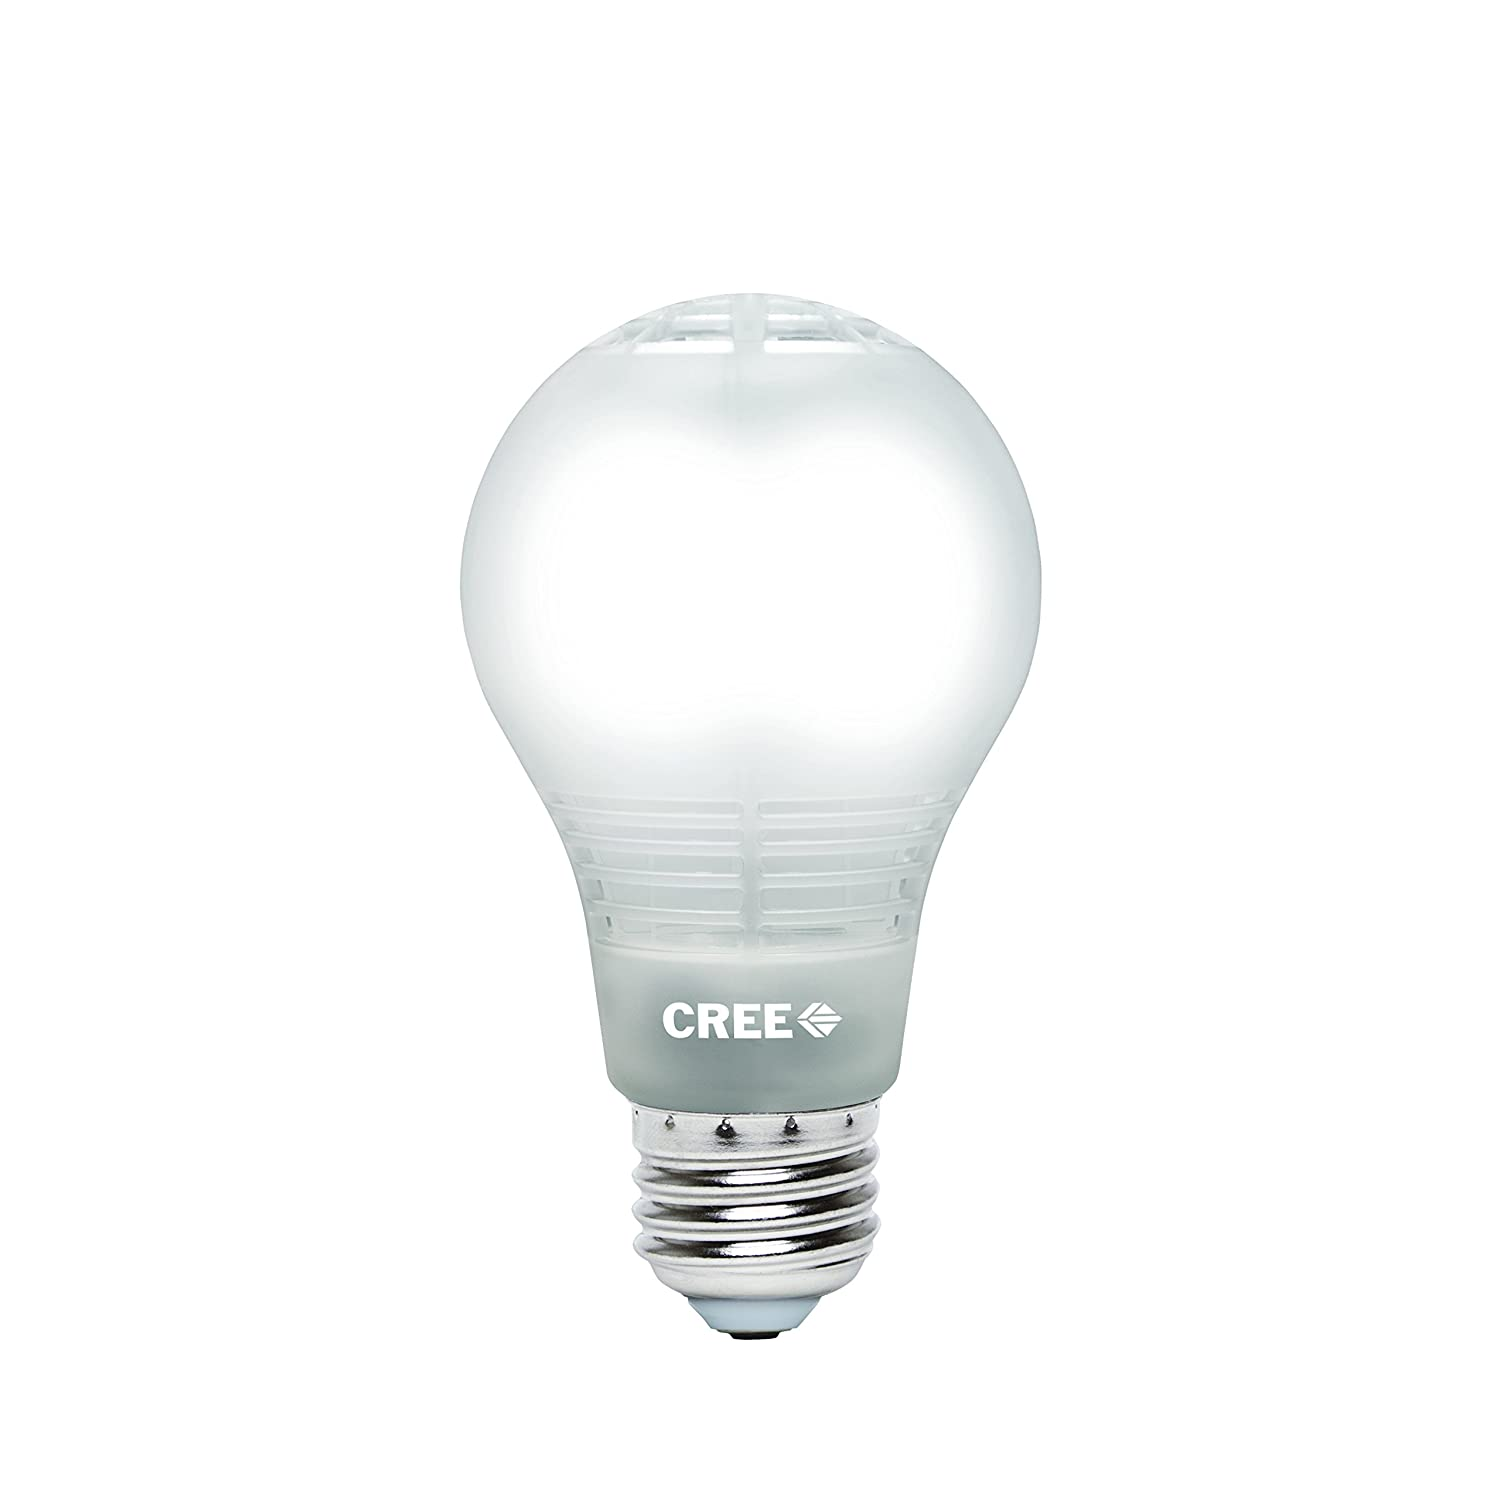 Cree 60w equivalent daylight 5000k a19 dimmable led light bulb cree 60w equivalent daylight 5000k a19 dimmable led light bulb with 4flow filament design amazon arubaitofo Images